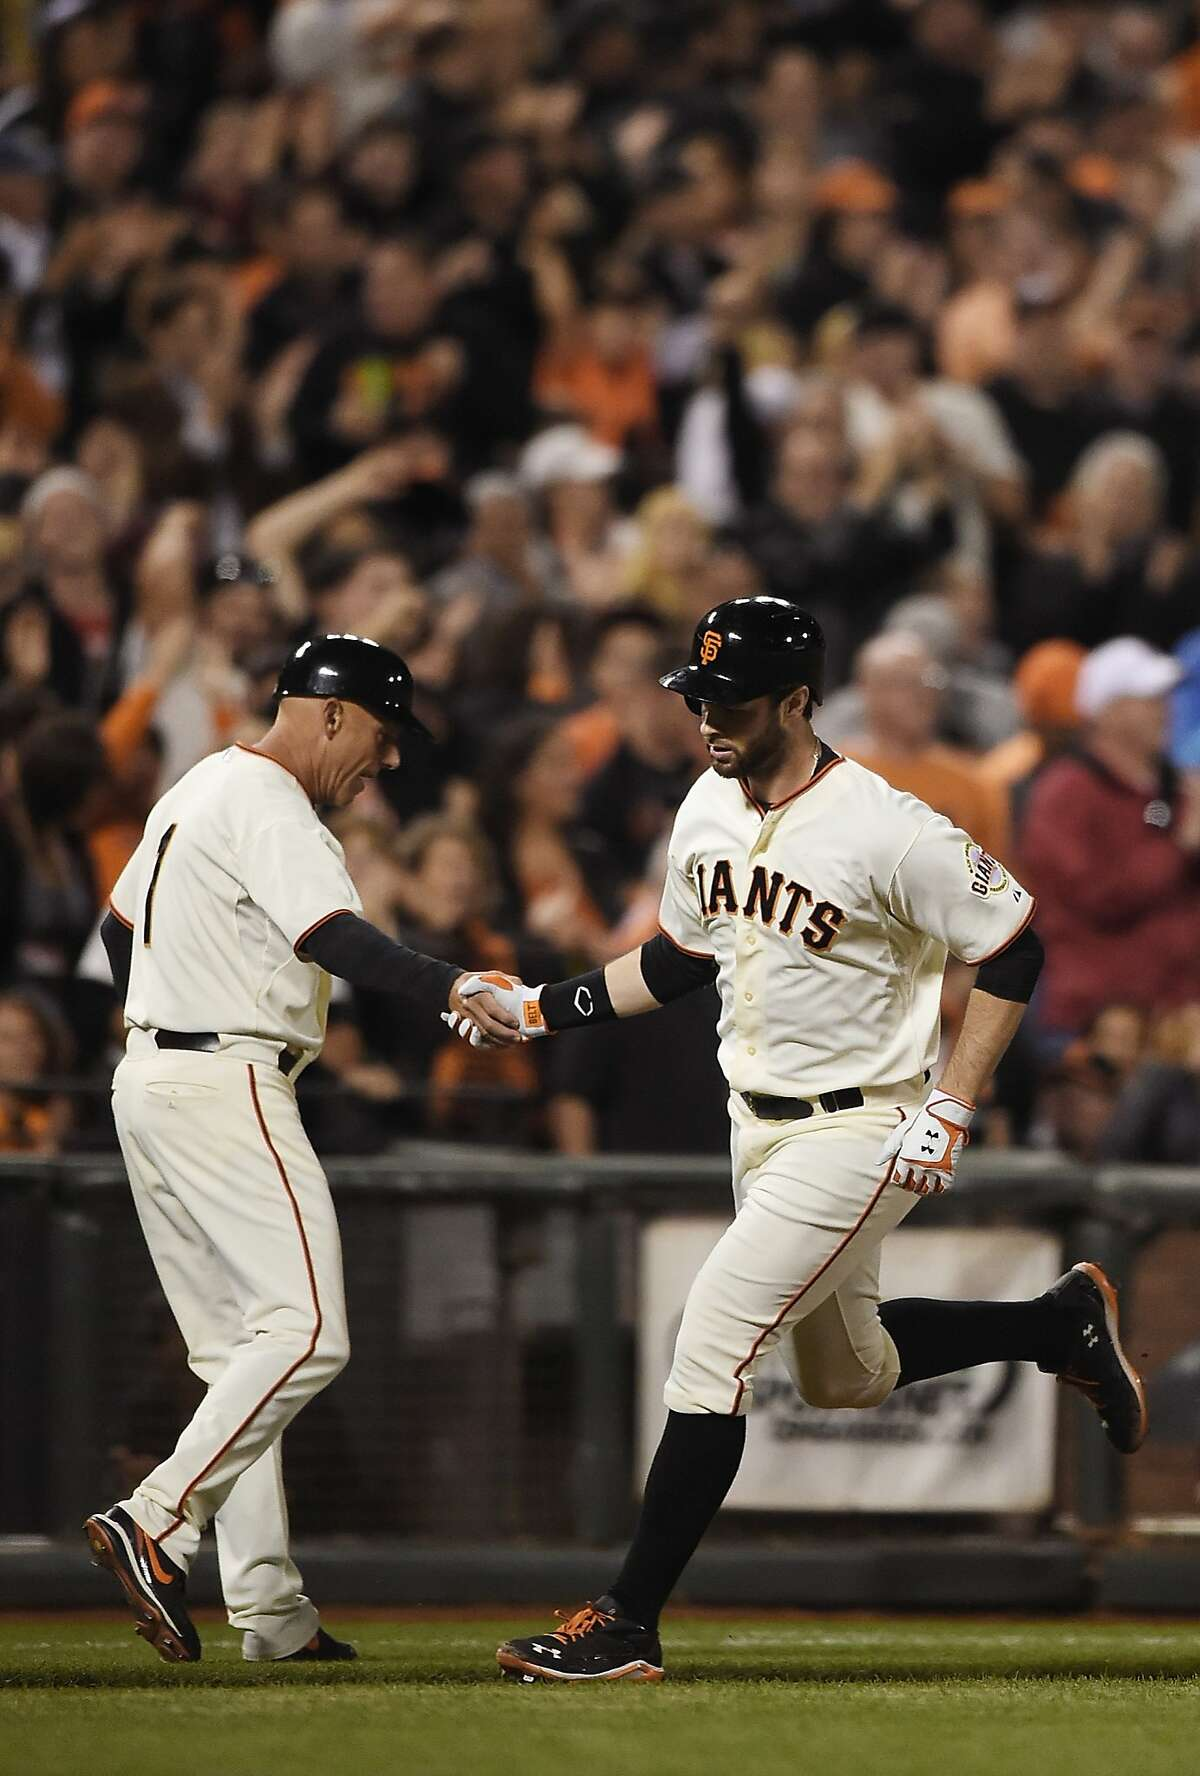 SAN FRANCISCO, CA - SEPTEMBER 25: Brandon Belt #9 of the San Francisco Giants is congratulated by third base coach Tim Flannery #1 after Belt hit a solo home run against the San Diego Padres in the bottom of the second inning at AT&T Park on September 25, 2014 in San Francisco, California. (Photo by Thearon W. Henderson/Getty Images)